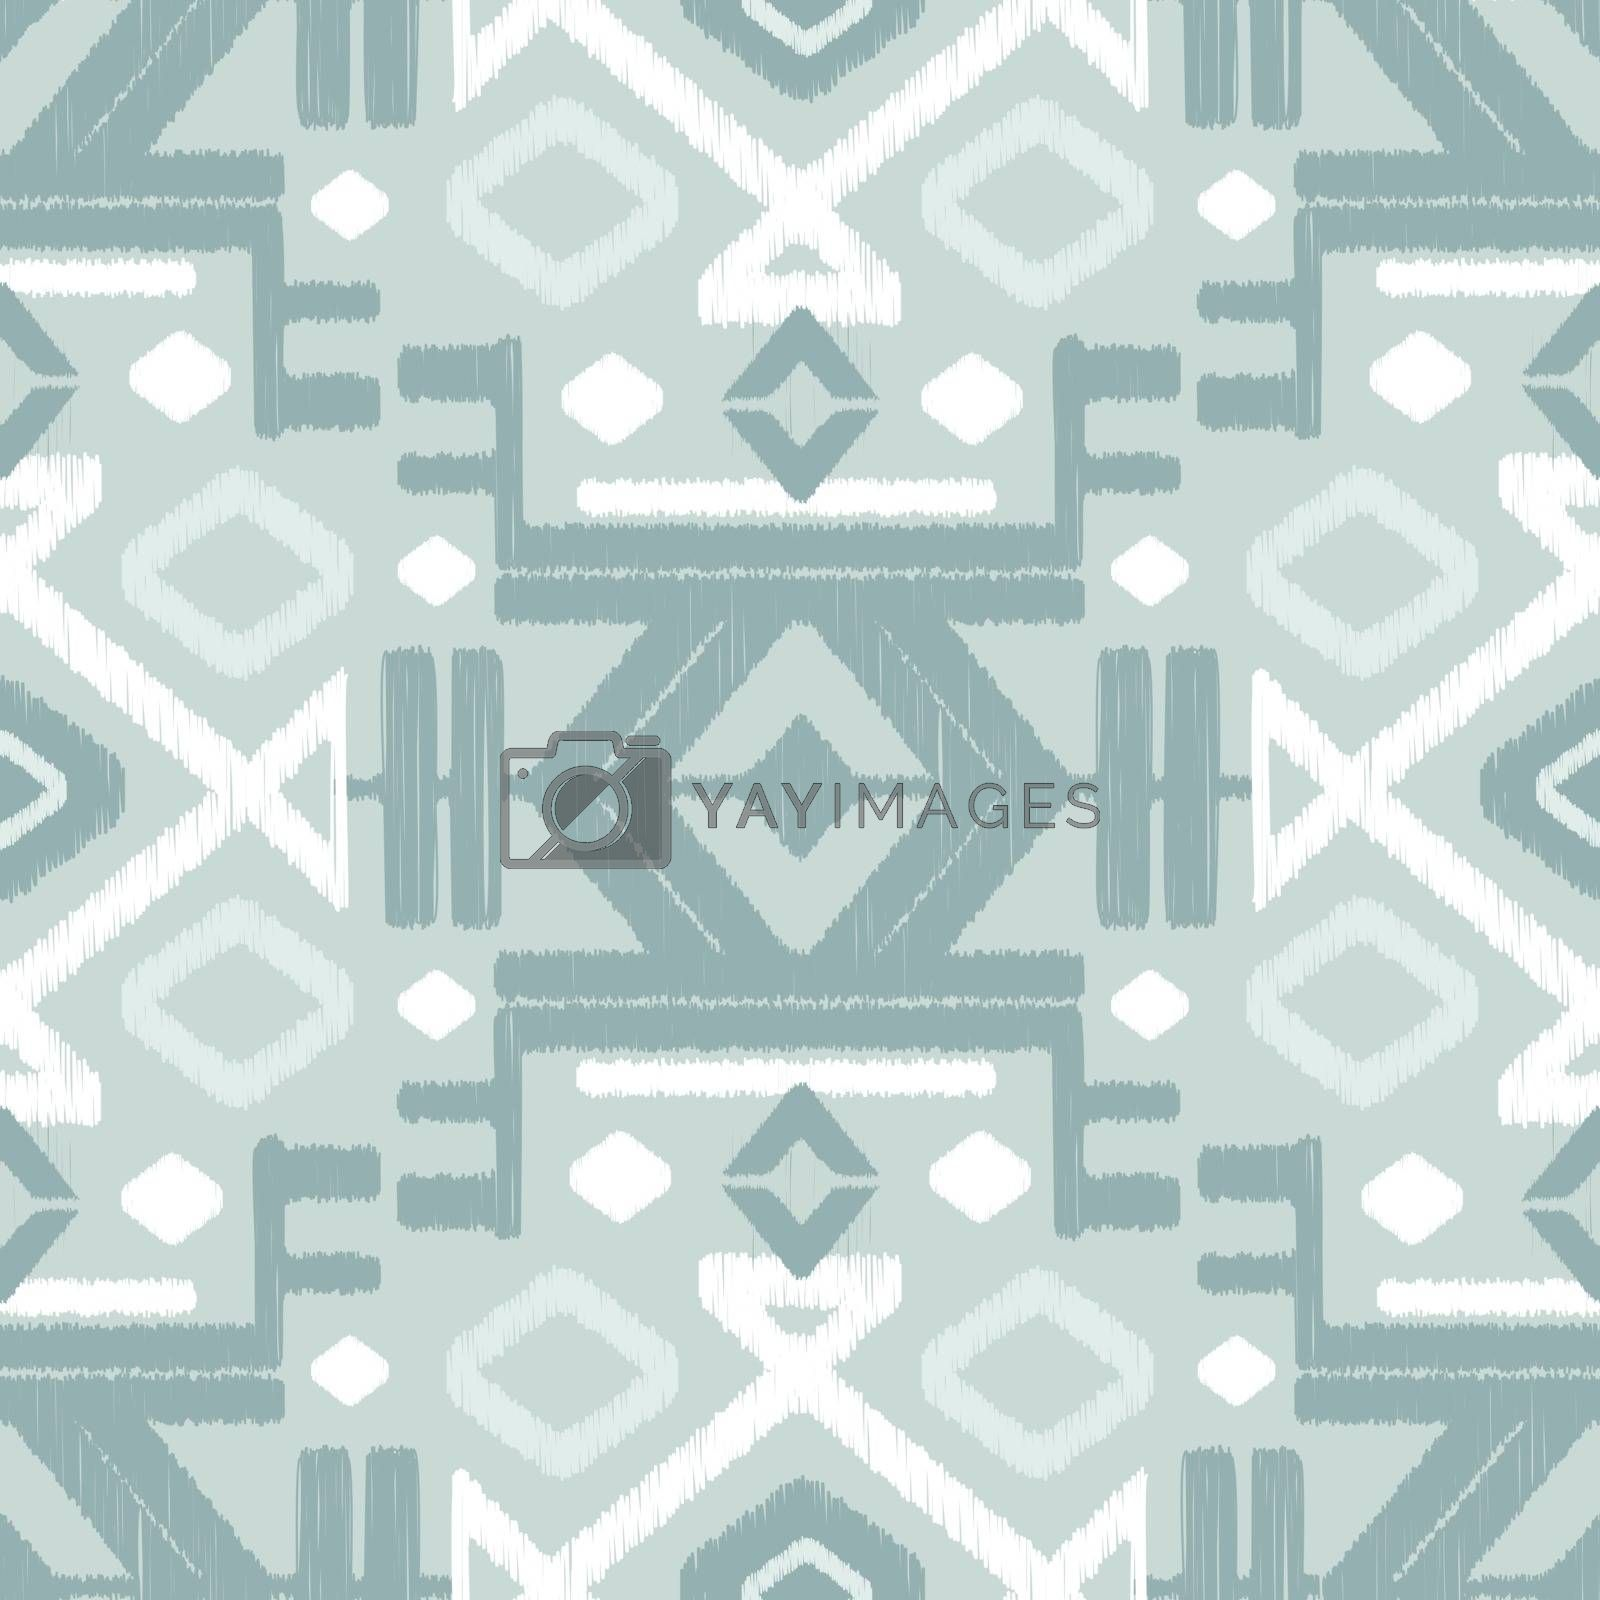 Vector abstract silver gray ikat seamless pattern background graphic design